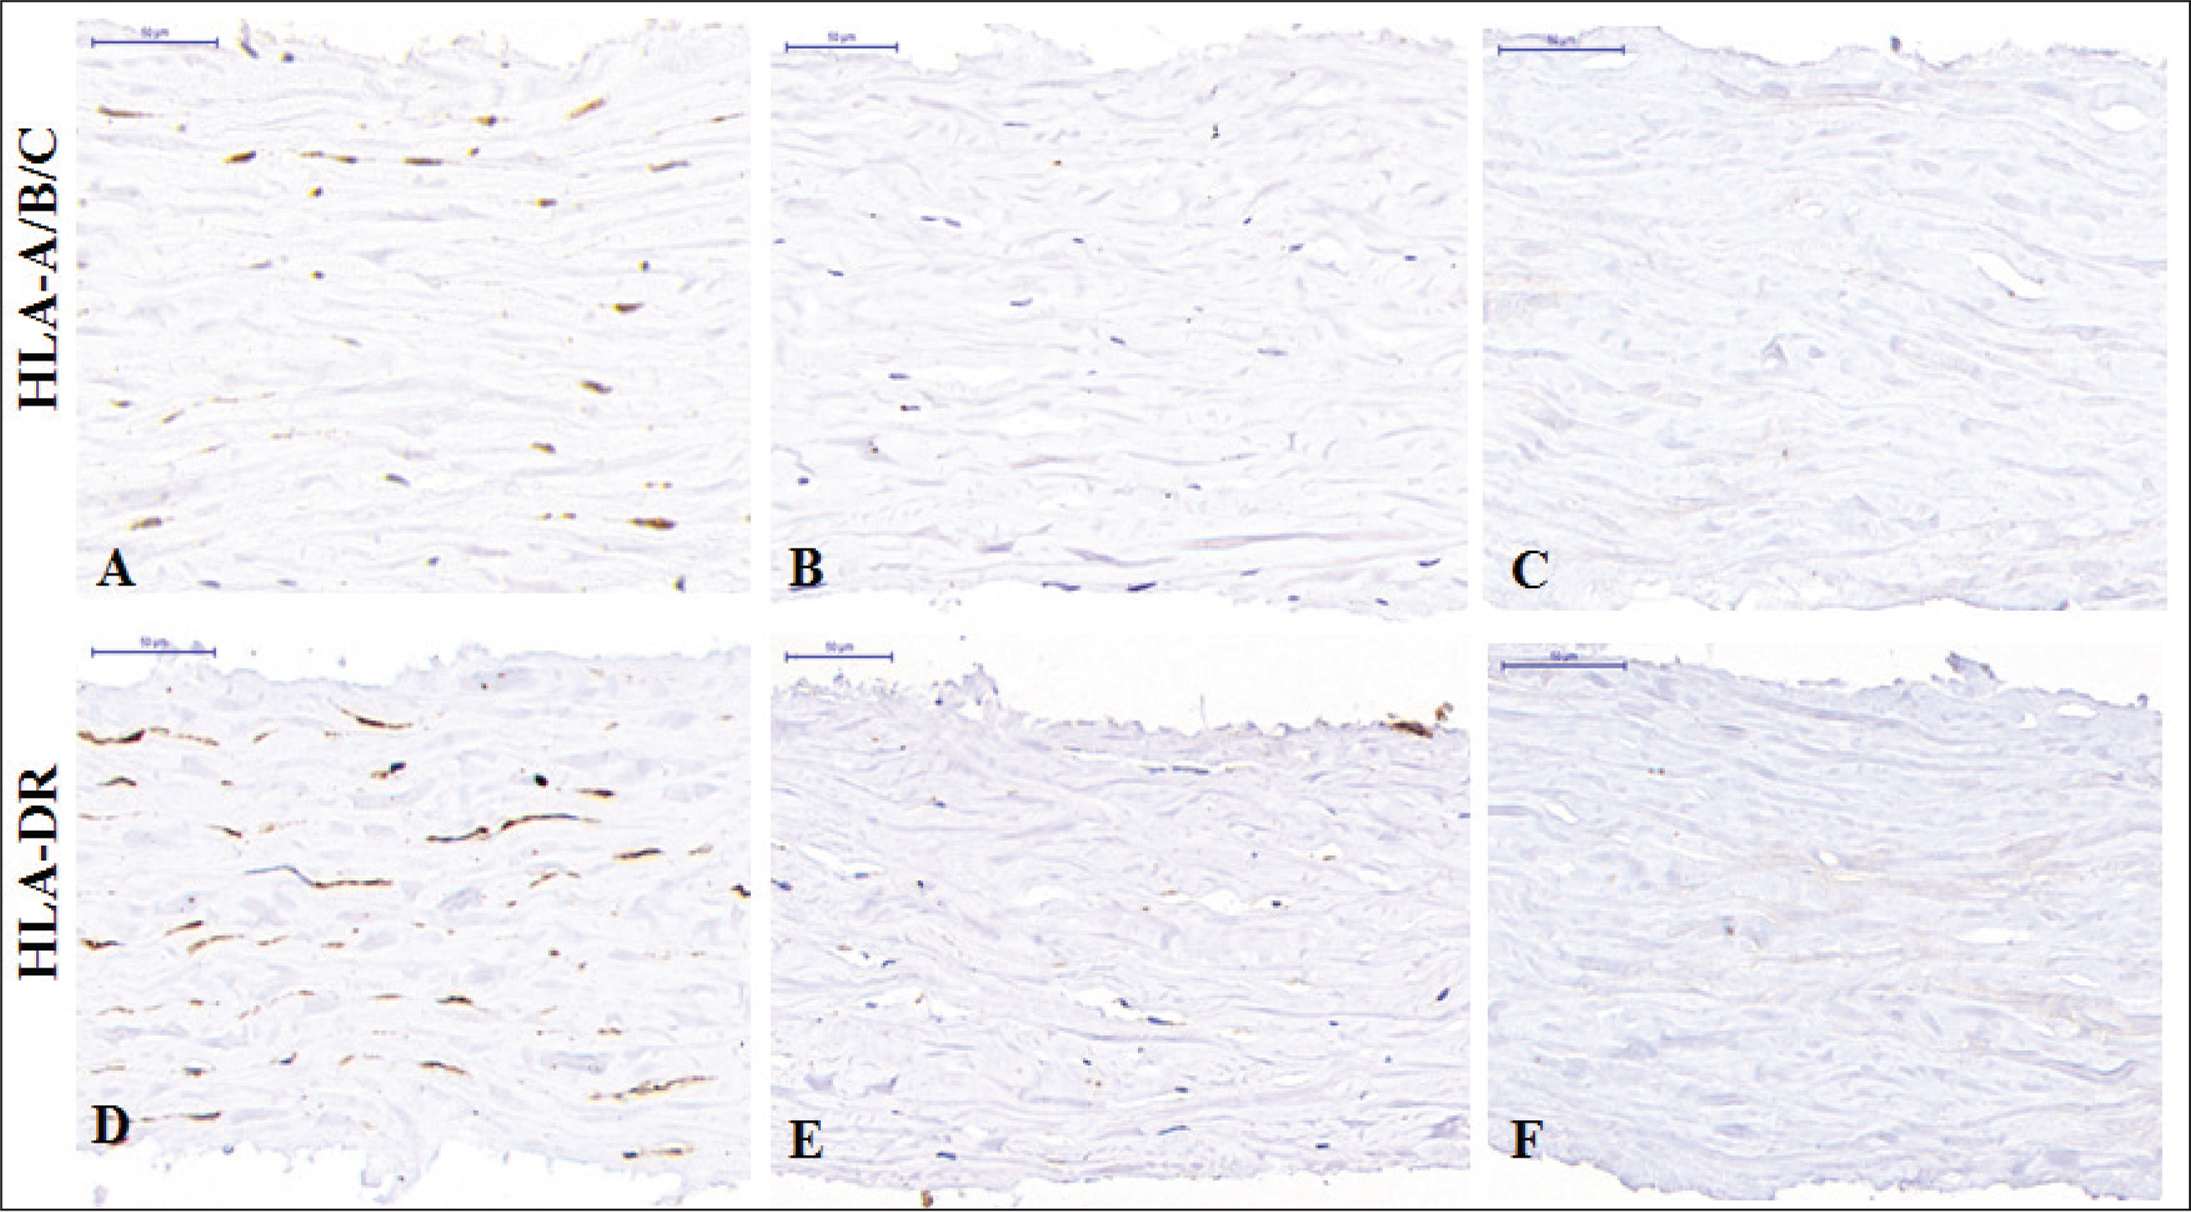 Immunohistochemistry of corneal stromal lenticules. In the fresh group (A and D), positive reactions (brown) for HLA-A/B/C and HLA-DR were observed on the cell surface. In the −78 °C anhydrous glycerol preservation group (B and E) and 0.1% sodium dodecyl sulfate (SDS) group (C and F), no obvious positive reactions were found (bar = 50 µm).